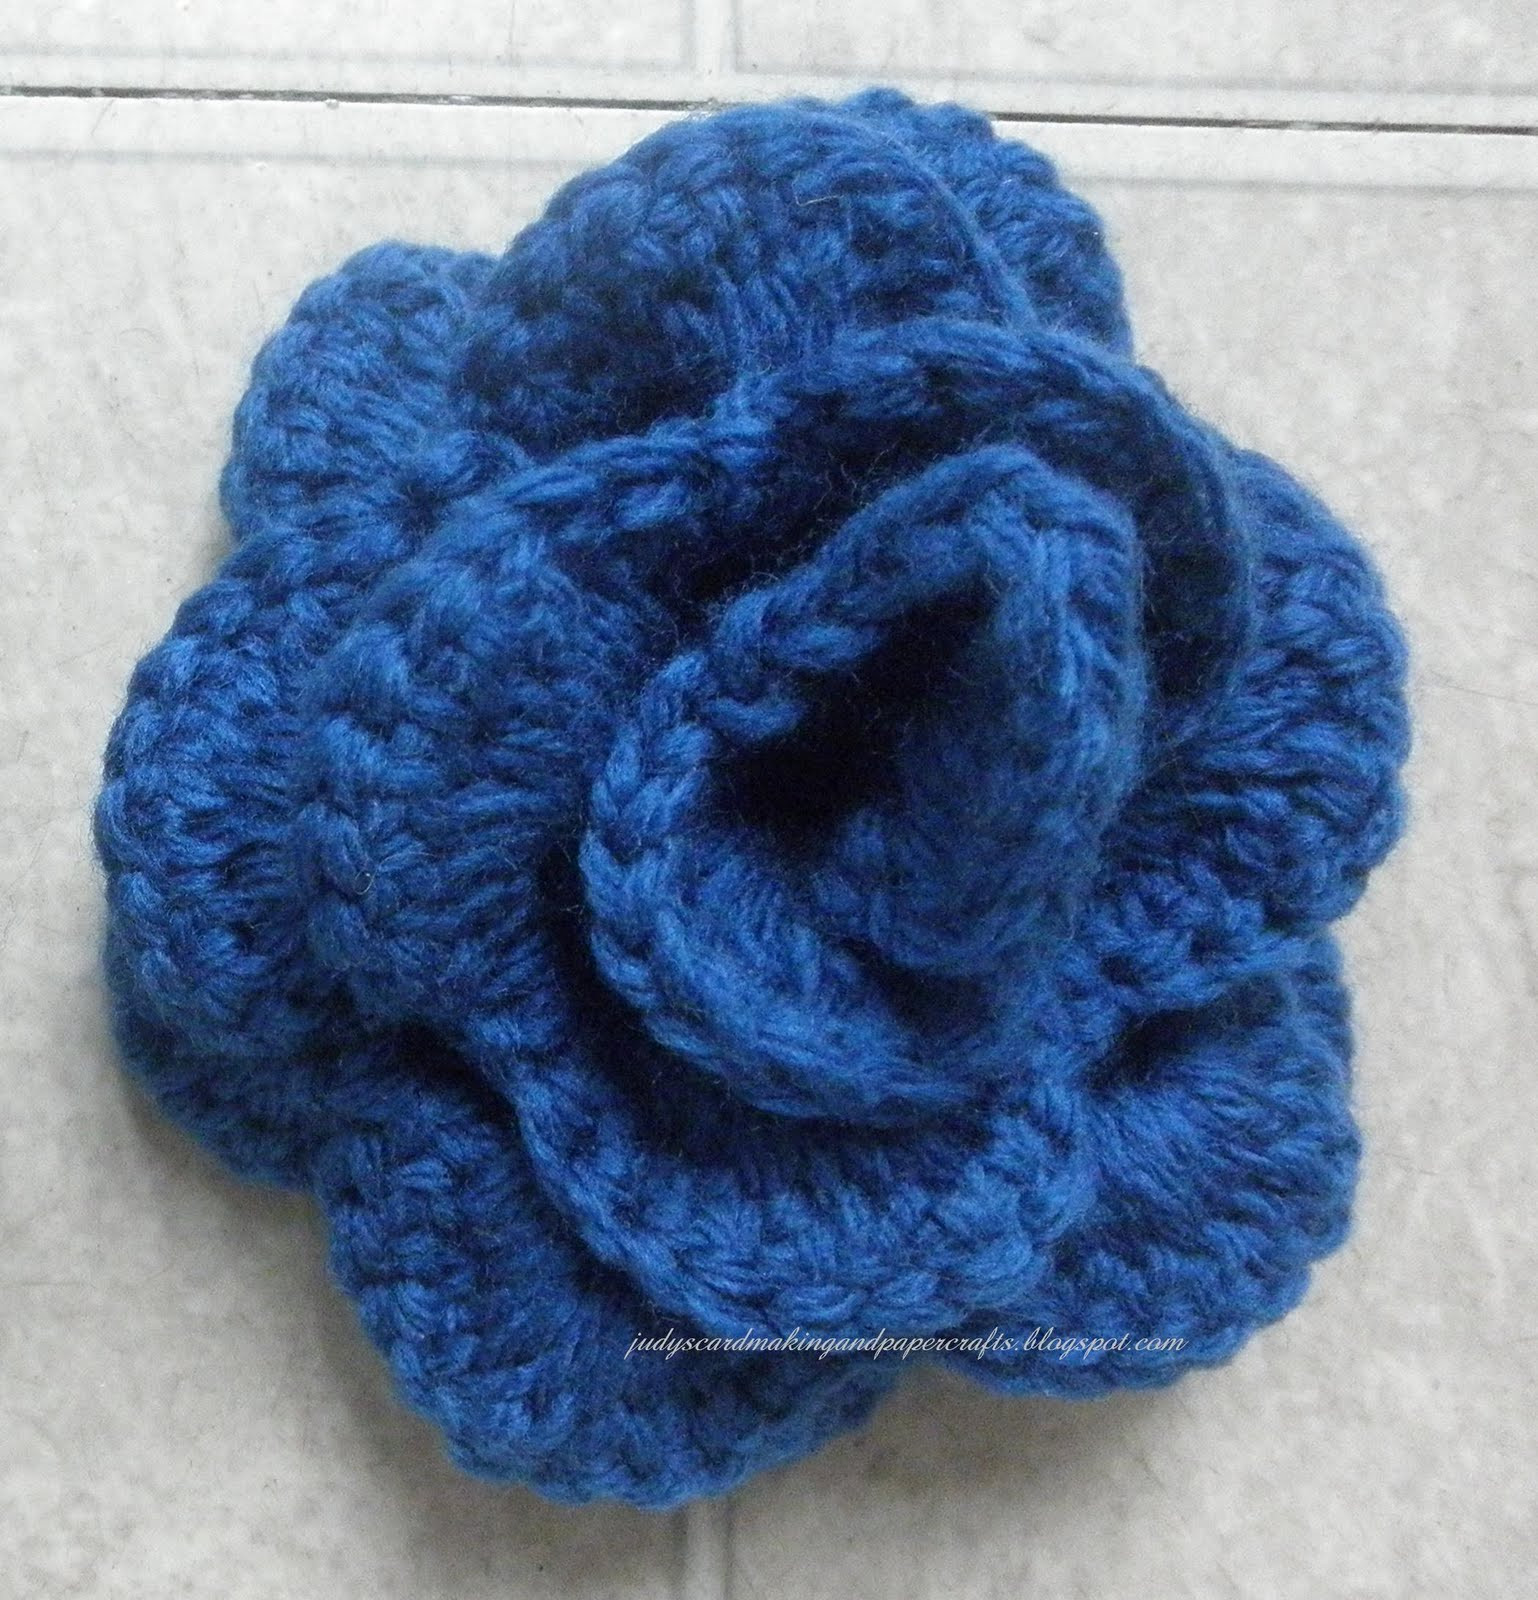 Free Crochet Rose Pattern New Crochet Flower Pattern Rose Of Attractive 49 Pics Free Crochet Rose Pattern